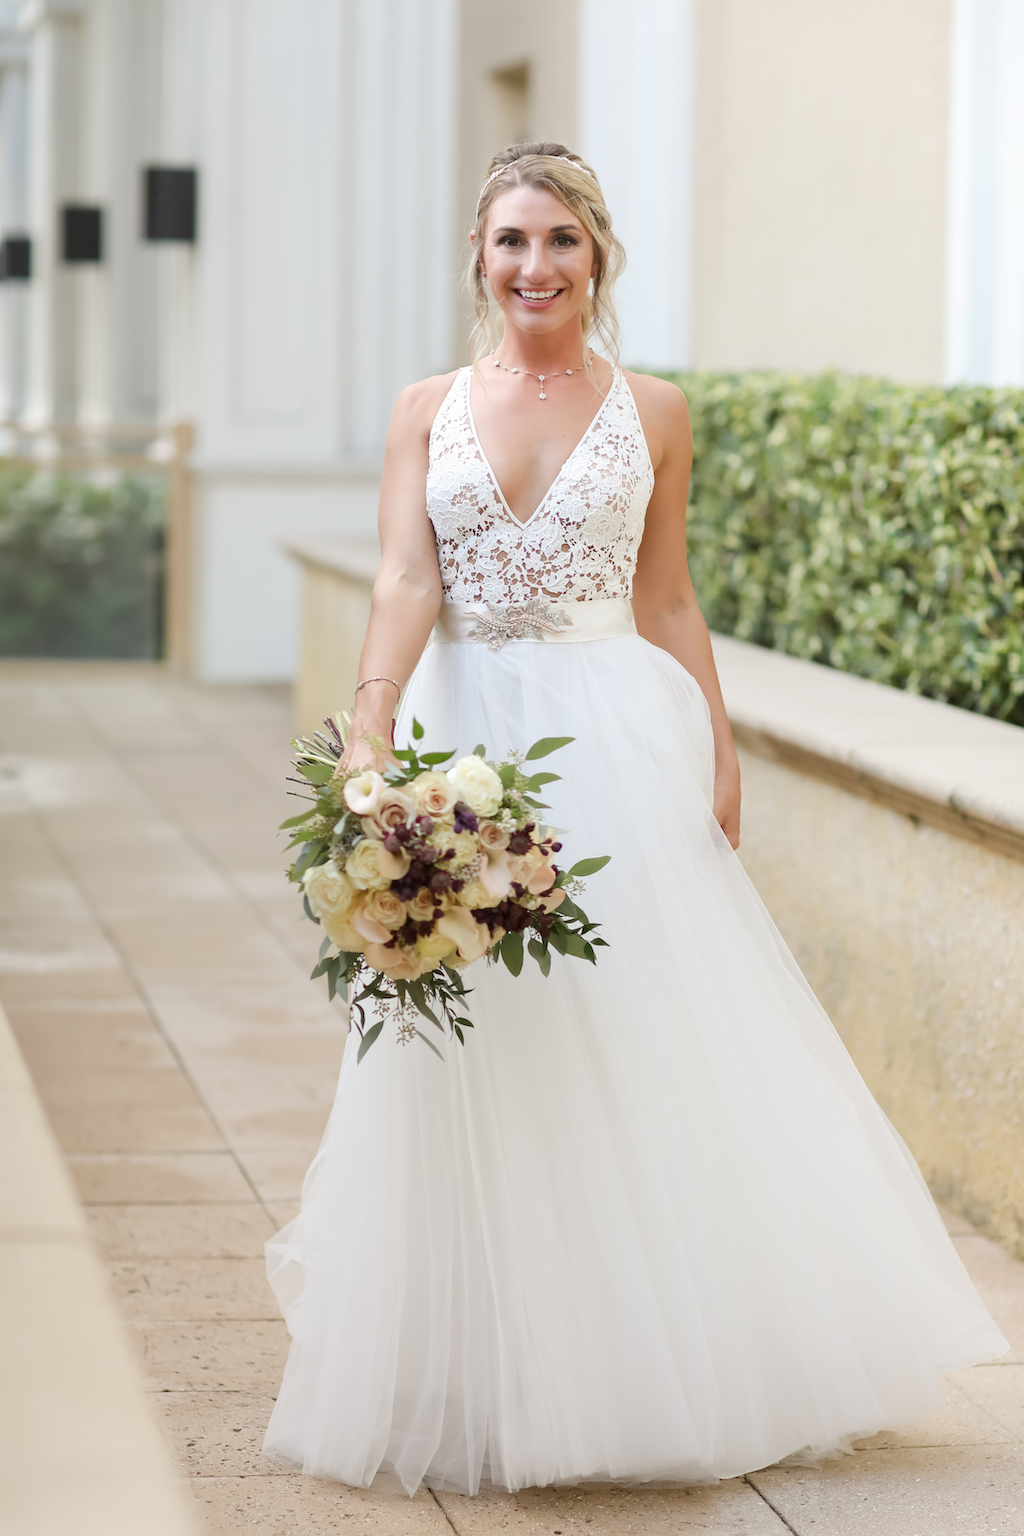 Florida Bride Outdoor Wedding Portrait, Bride in Lace Nude and White Deep V Neckline Bodice with Straps, Ivory Sash with Floral Rhinestone Brooch, Tulle and Illusion Skirt with Organic Ivory, Dark Purple and Greenery Flower Bouquet   Tampa Bay Wedding Photographer Lifelong Photography Studios